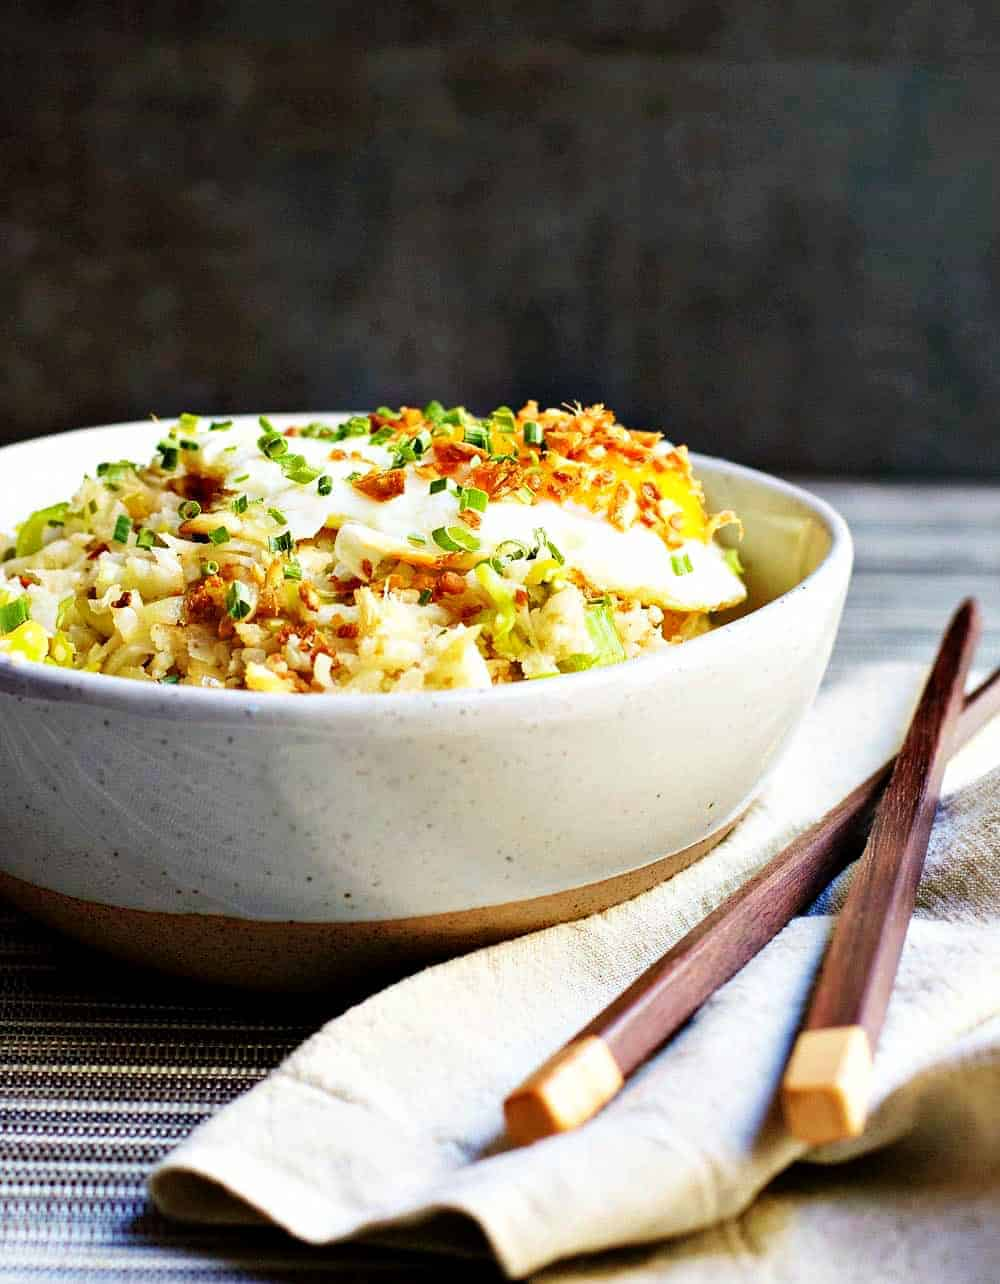 Califlower-Fried-Rice in ceramic bowl with Chopsticks and Napkin